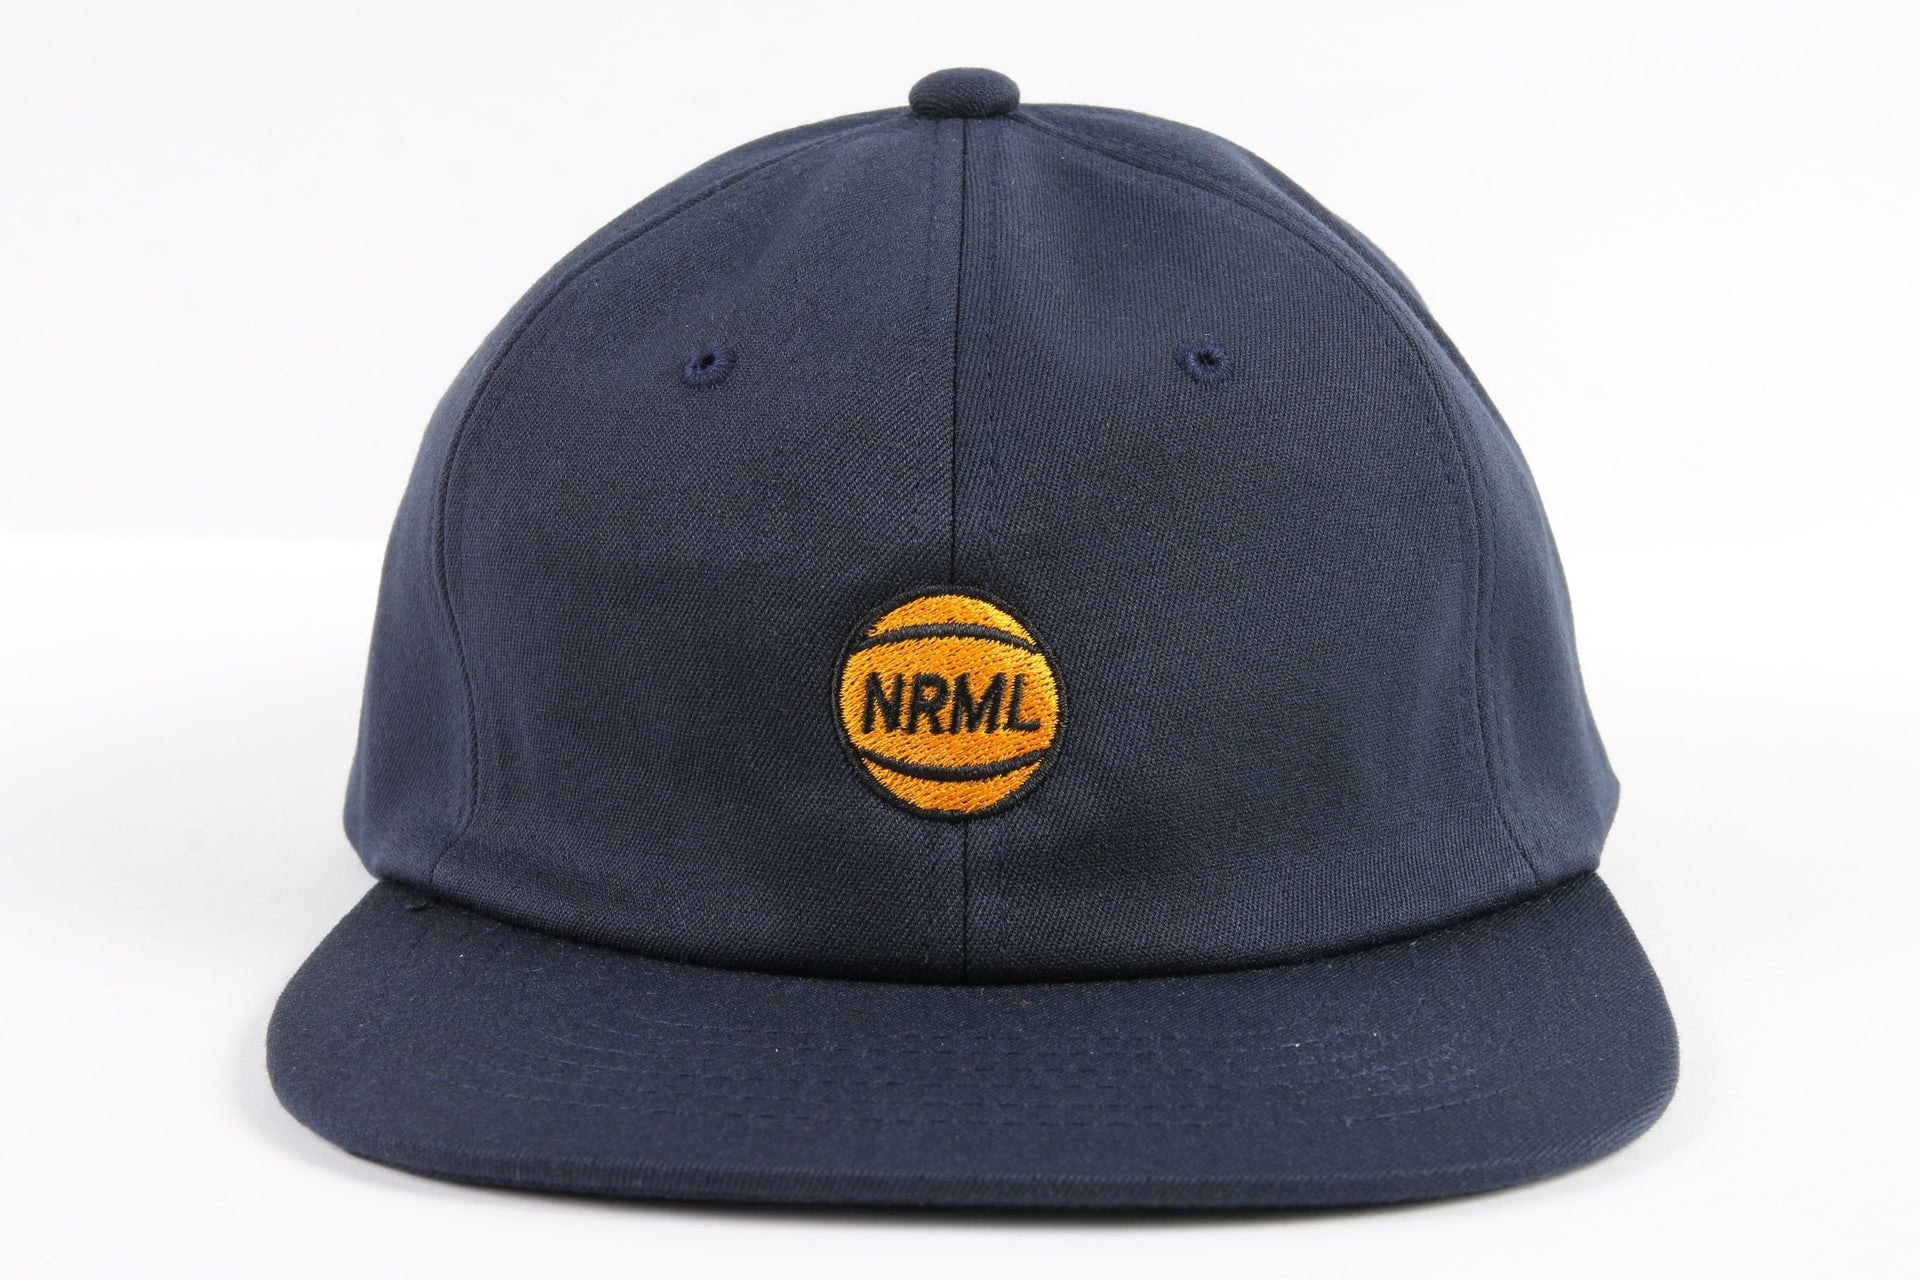 NRML BASKETBALL HAT HATS NRML NAVY ONE SIZE